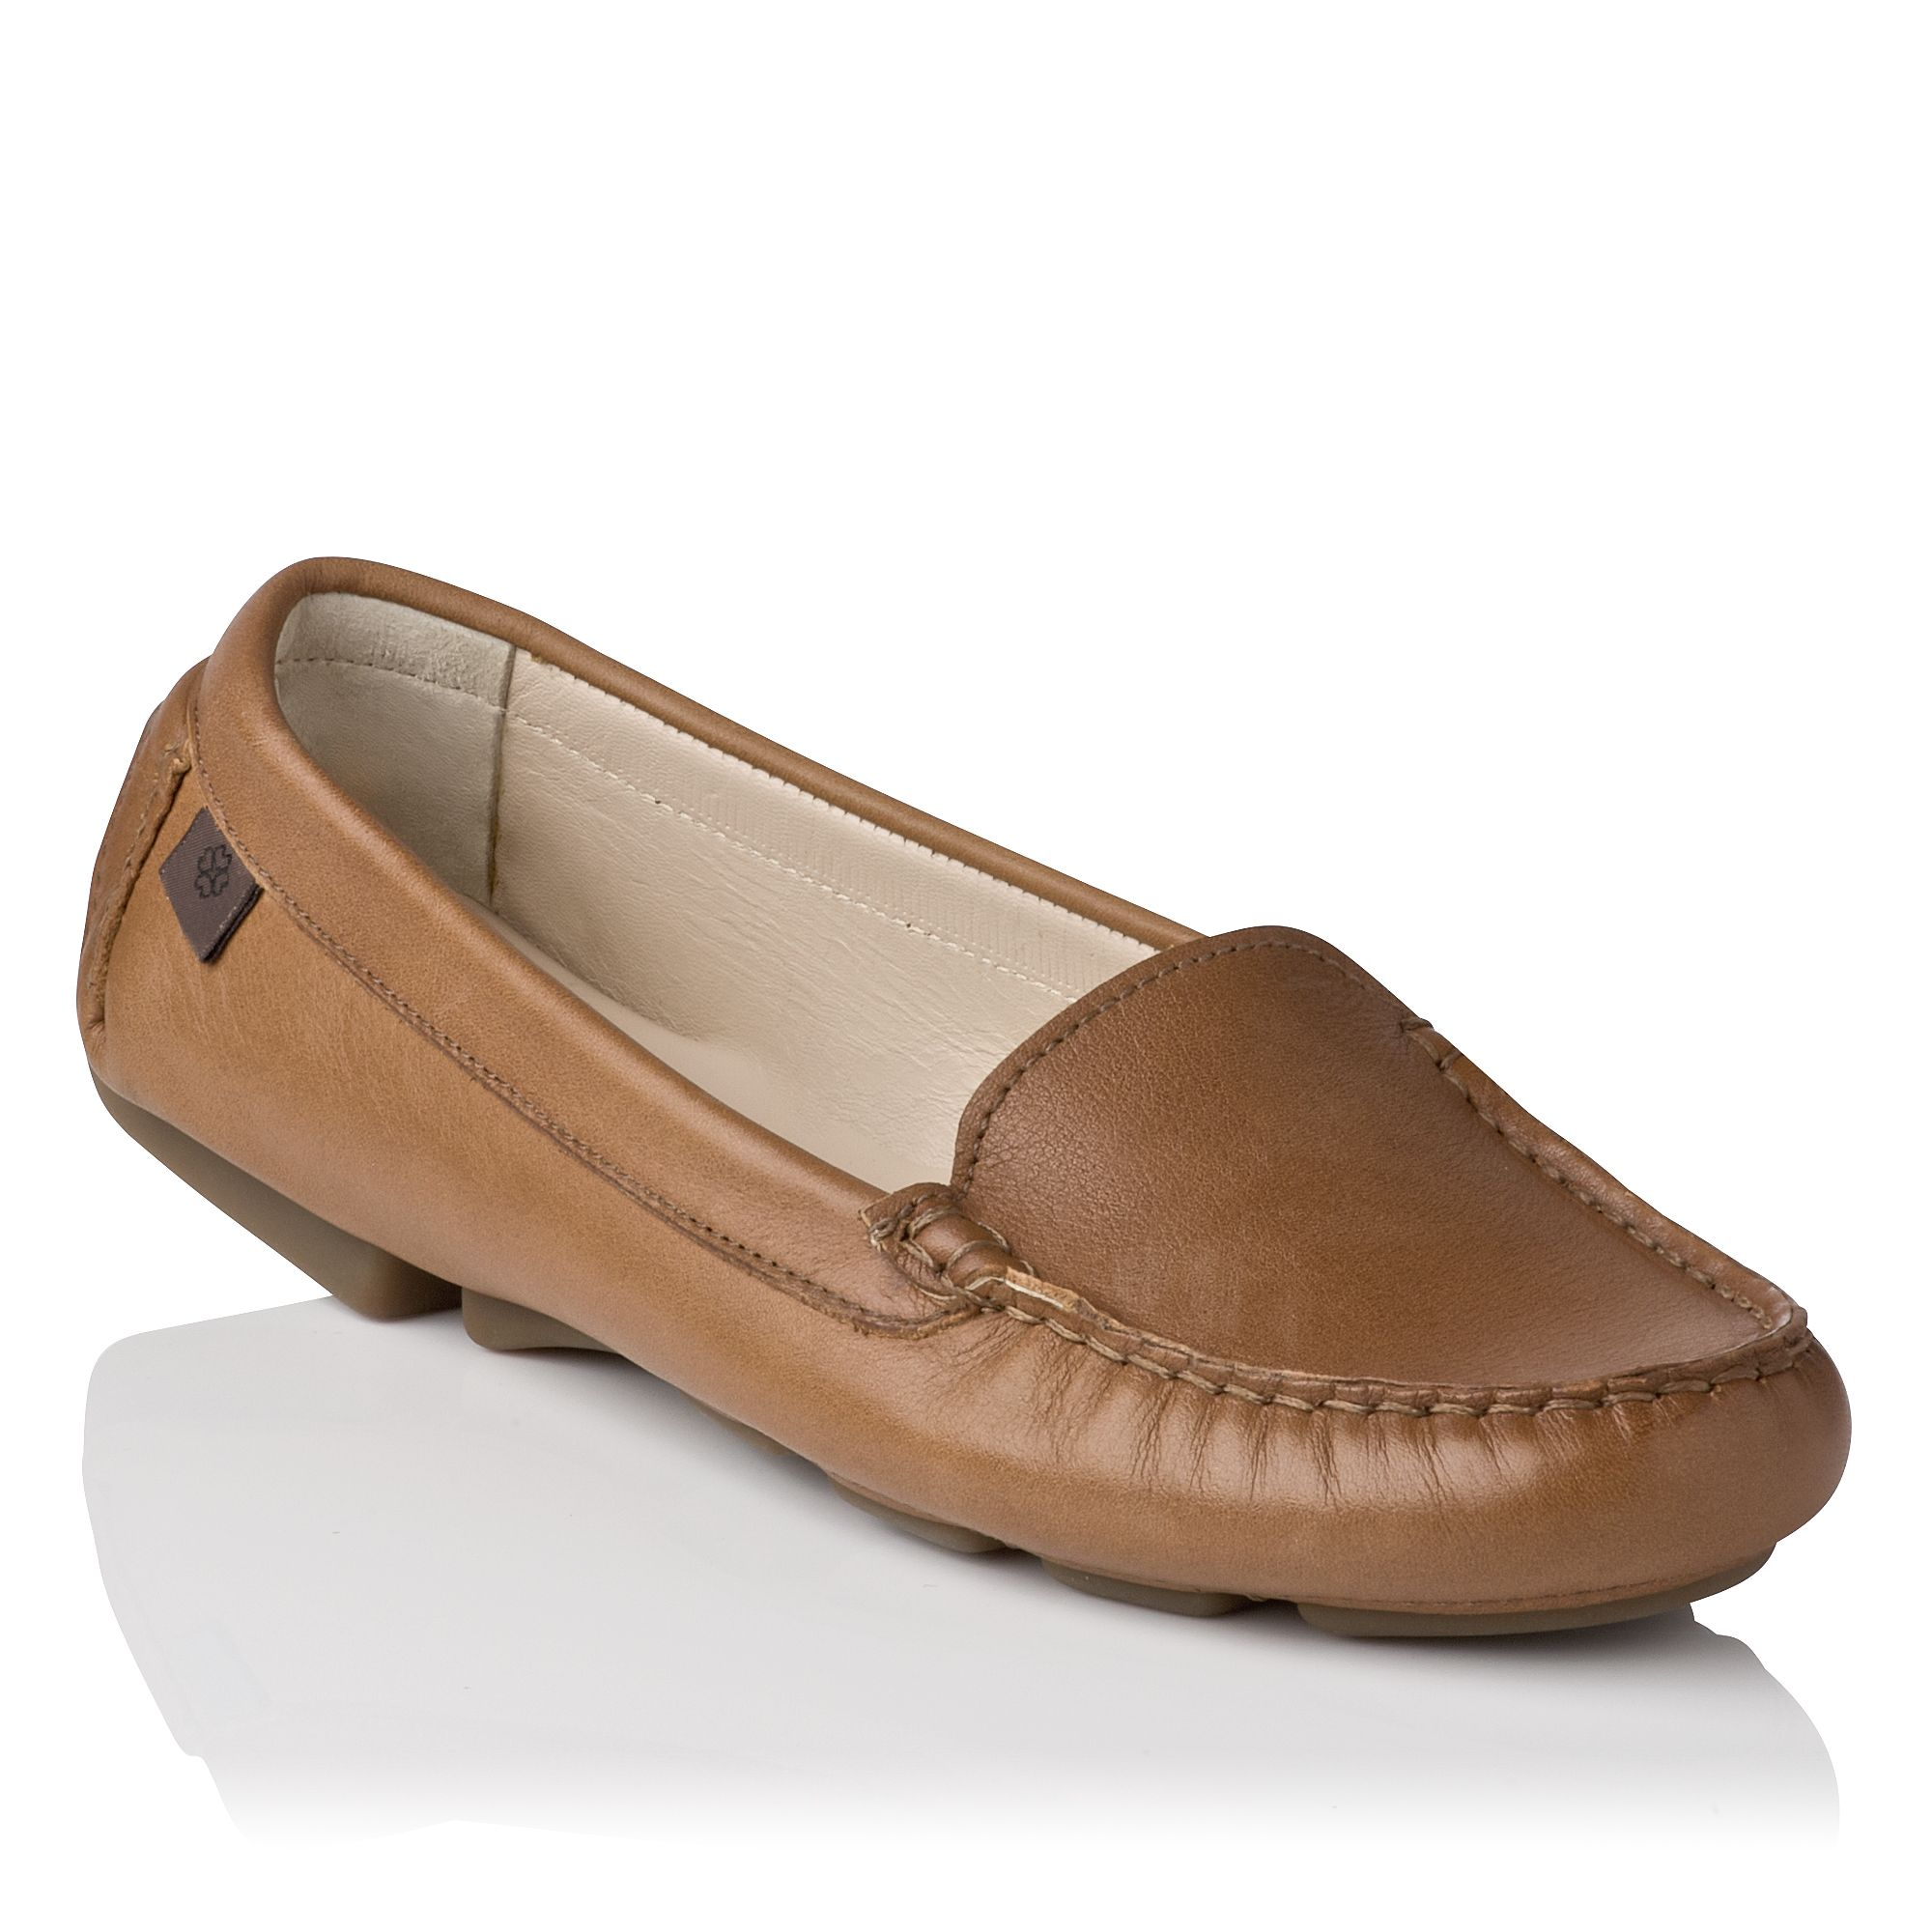 Gail plain driving shoes